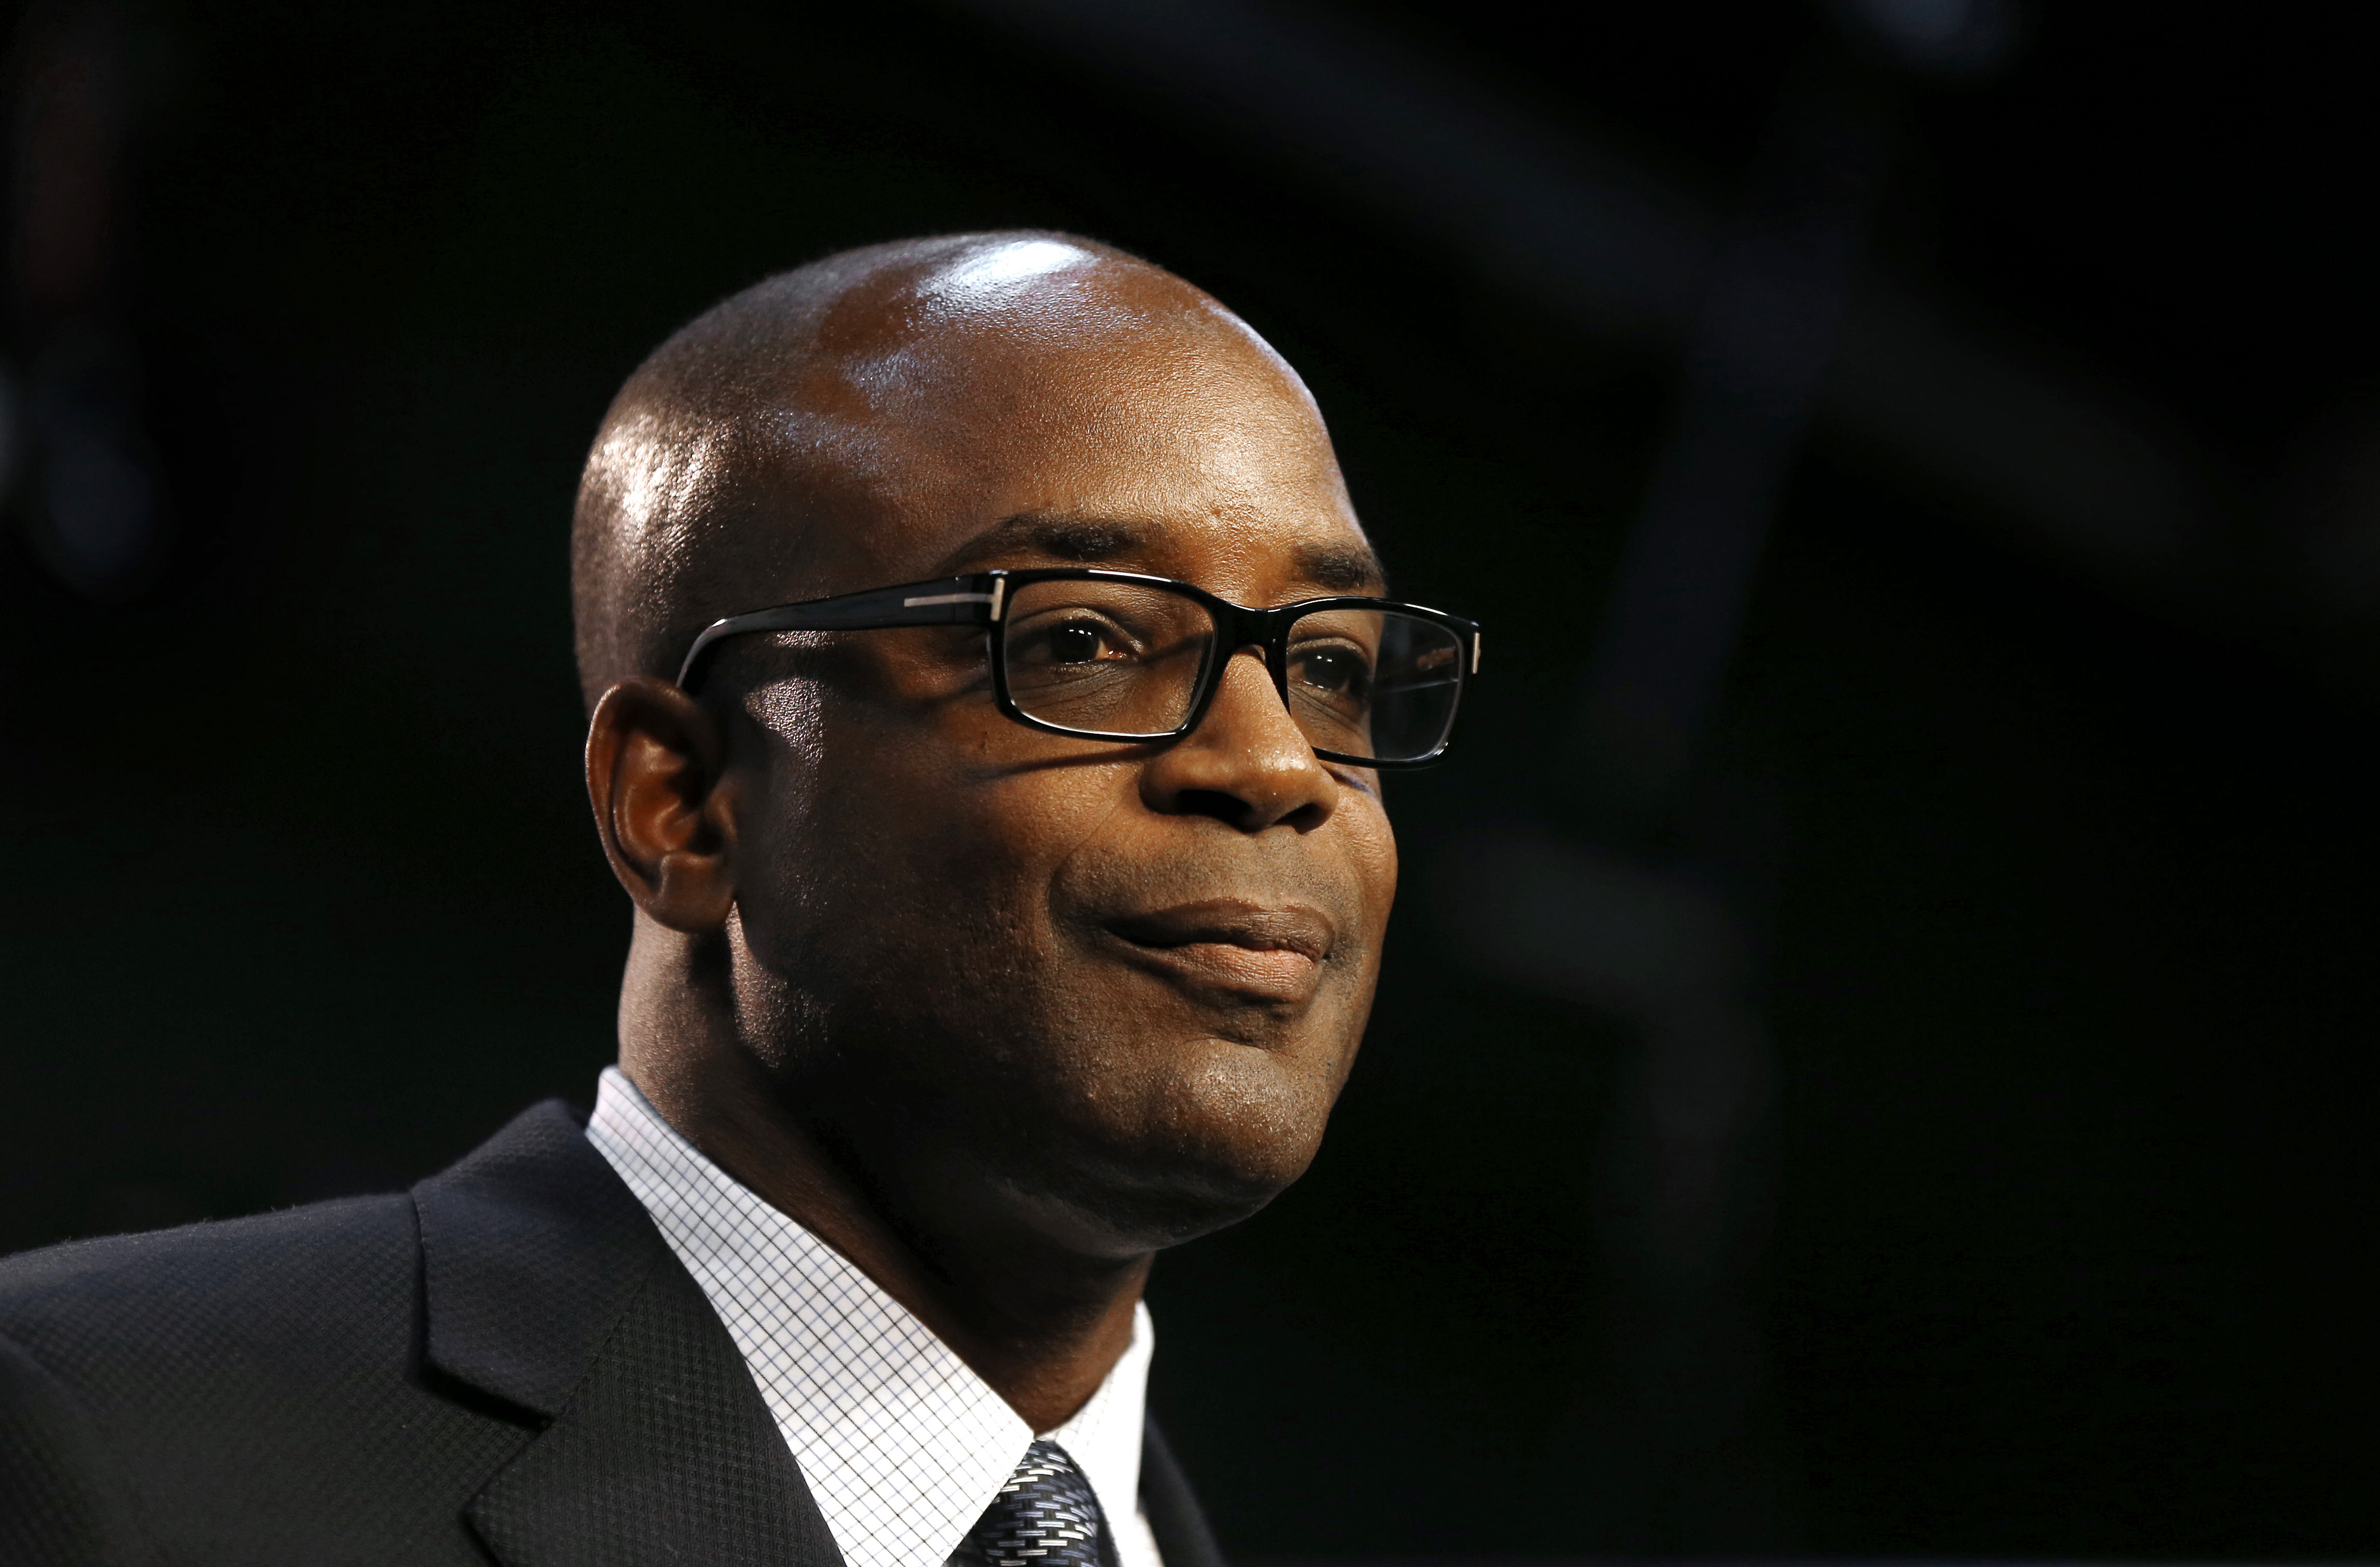 Detroit Lions interim general manager Sheldon White speaks during an NFL football news conference Thursday, Nov. 12, 2015, in Allen Park, Mich. White replaces Martin Mayhew who was fired along with team president Tom Lewand. (AP Photo/Paul Sancya)